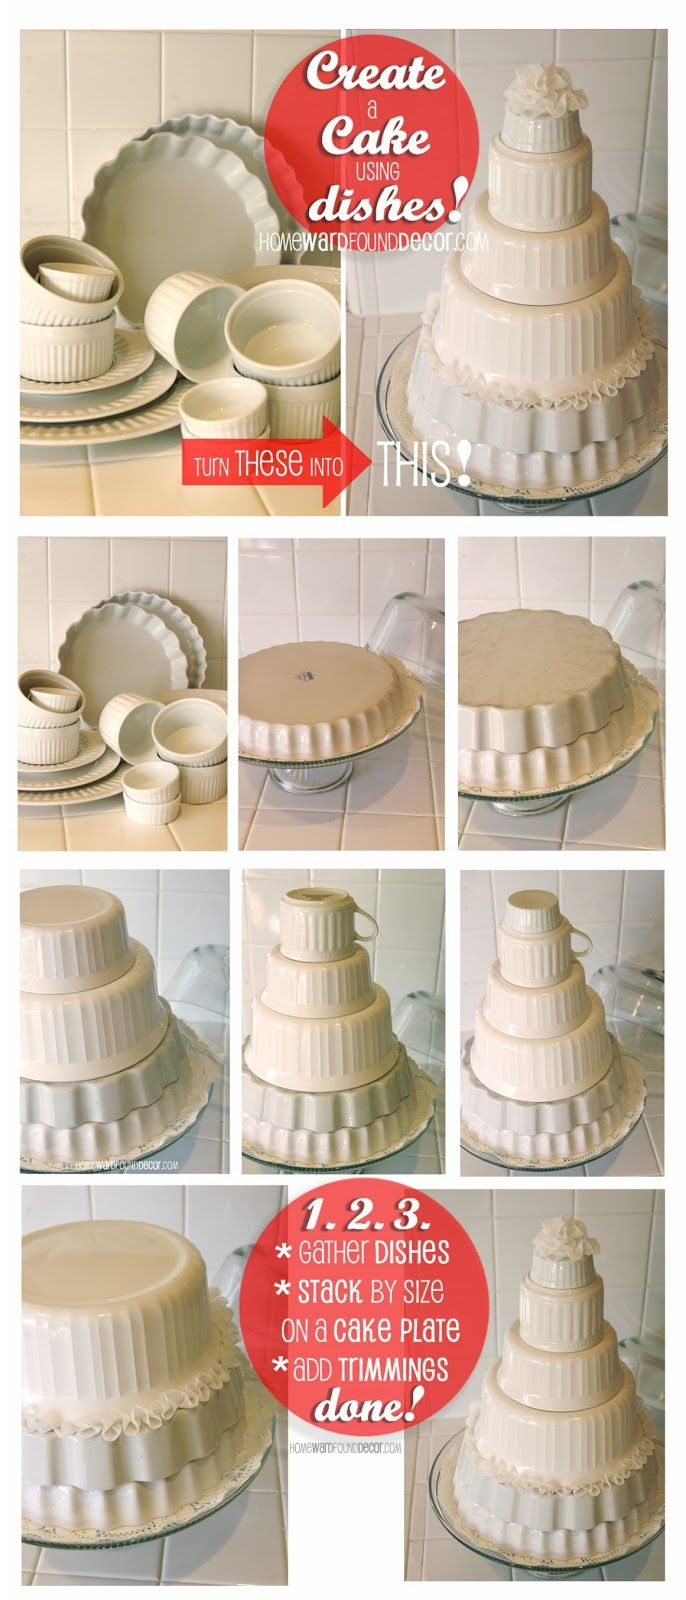 Create a cake using dishes.